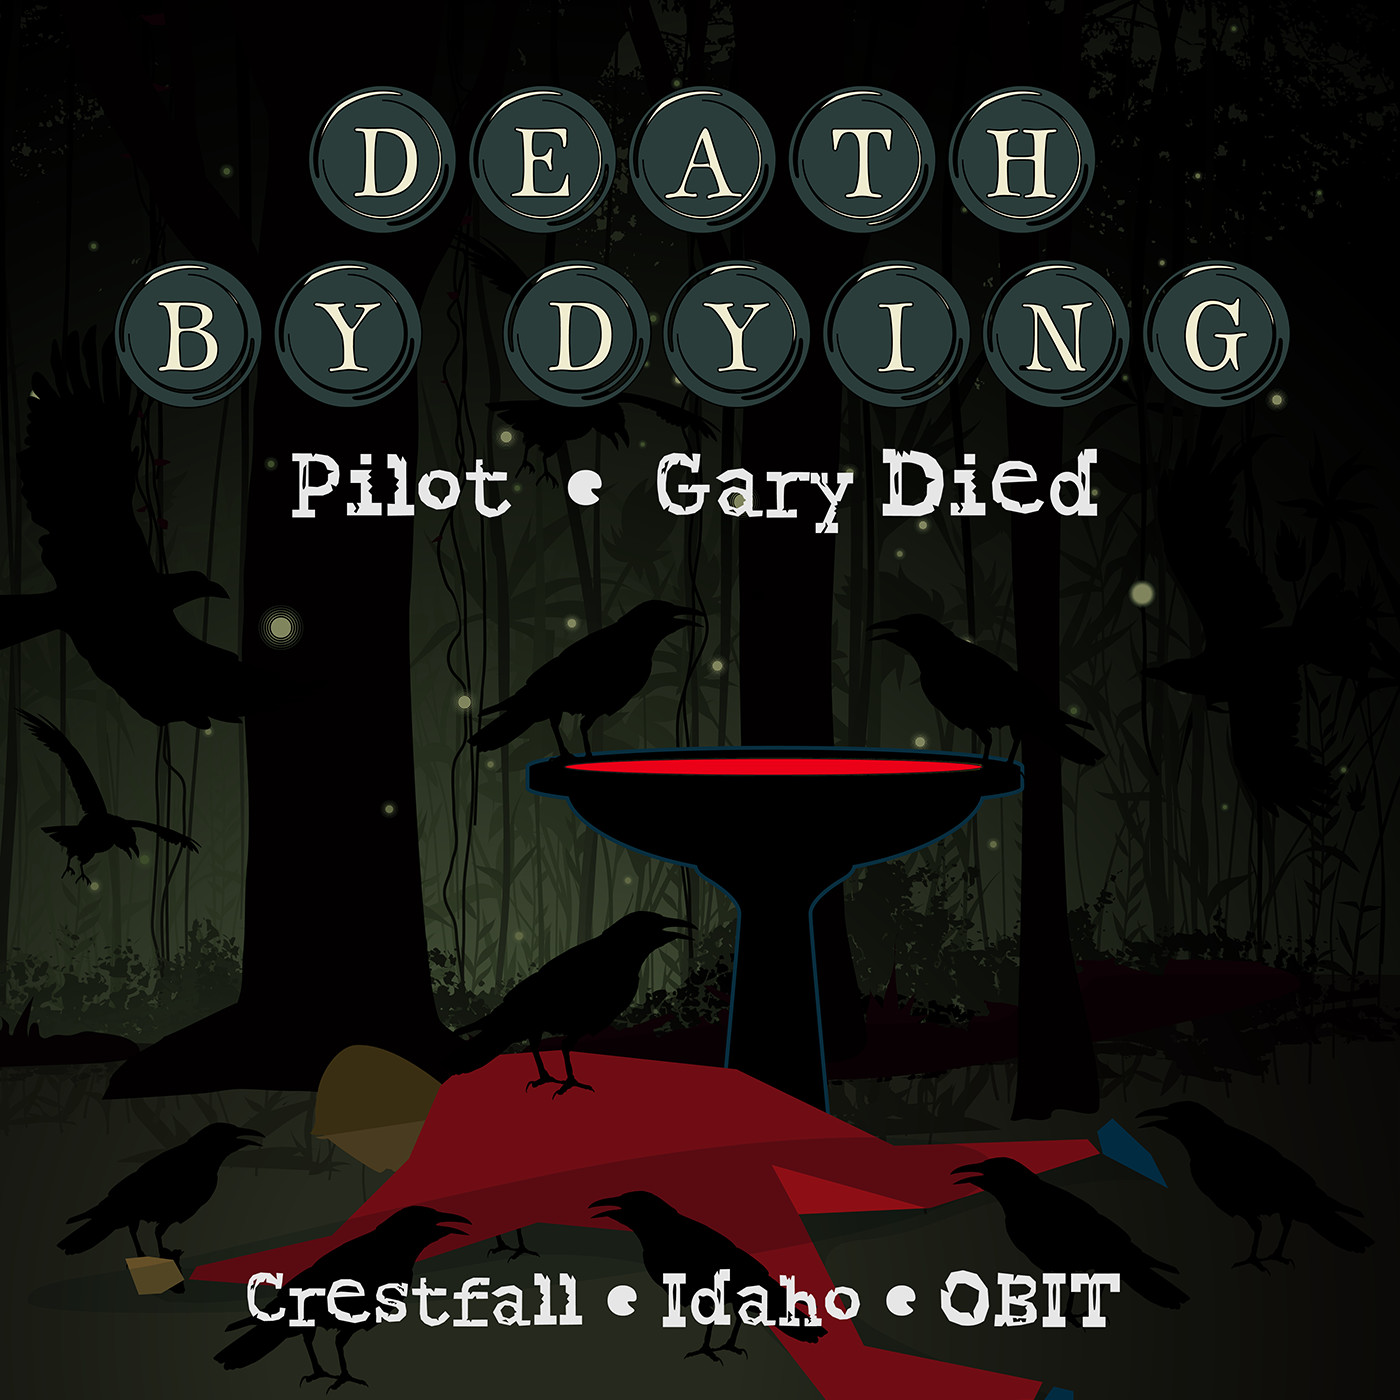 Obituary 00: Gary Died (Pilot)